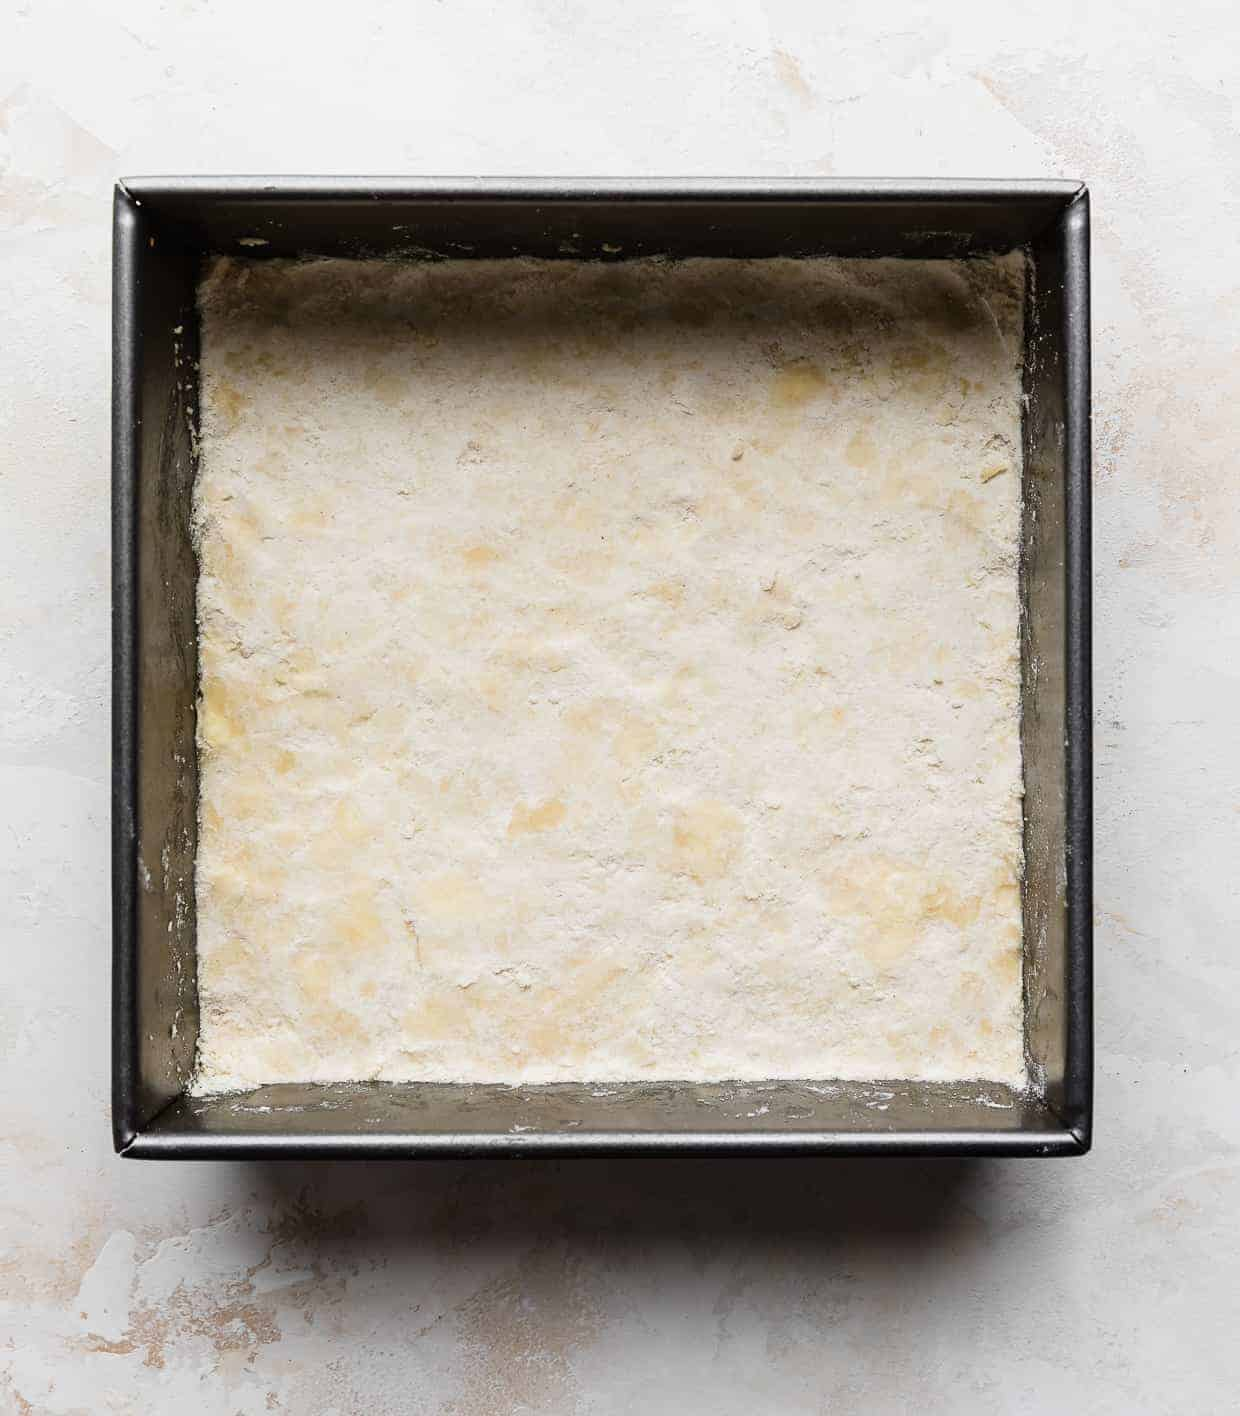 A square pan with a layer of sweetened shortbread crust lining the bottom of the pan.